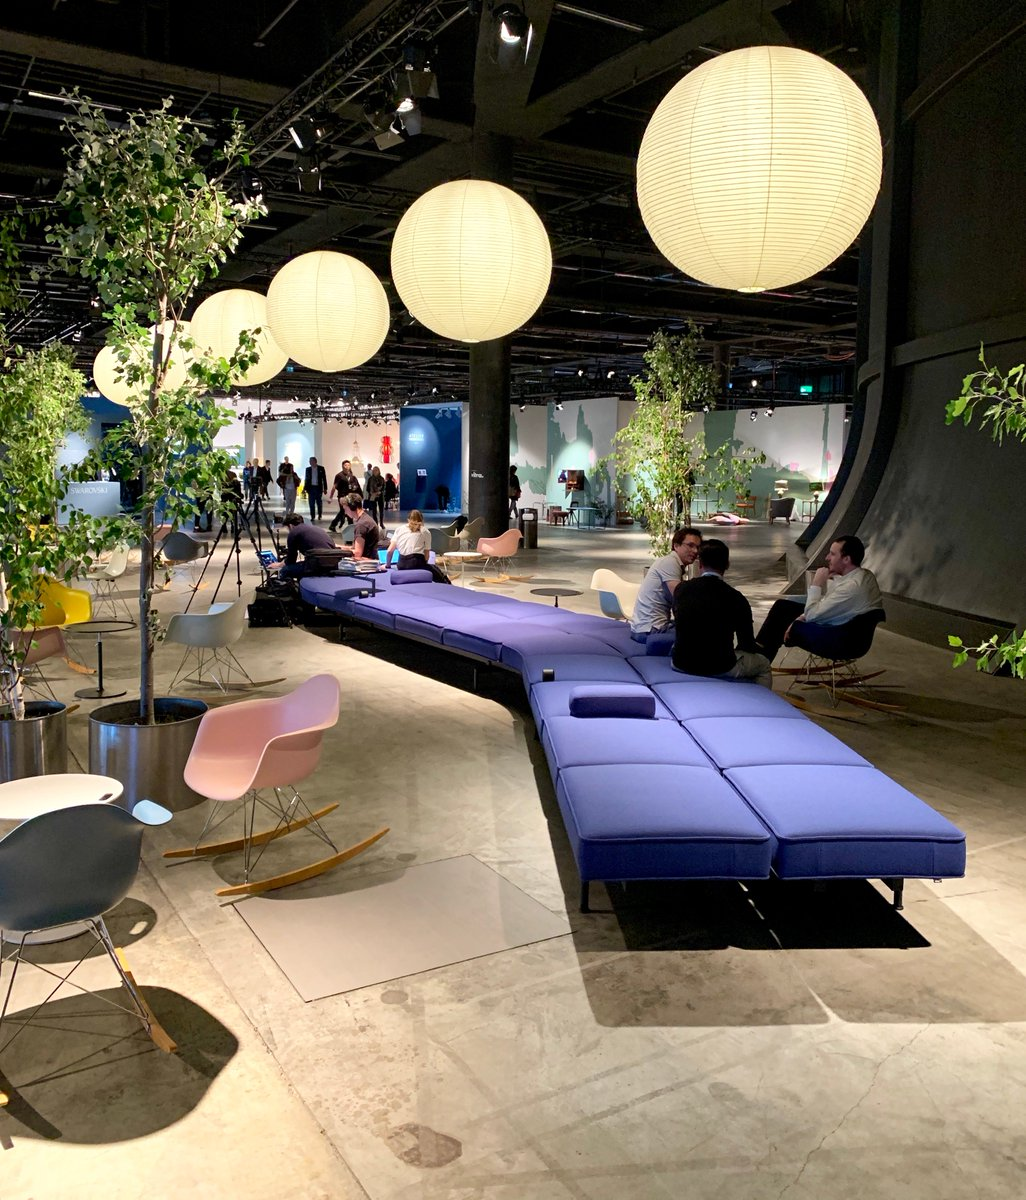 Art week in Basel is officially on, @DesignMiami just opened its doors. If you need a rest from all the art- and design-exploring, we've got you covered. Have a seat! #vitra #designmiami #designmiamibasel <br>http://pic.twitter.com/x17K4rzohI